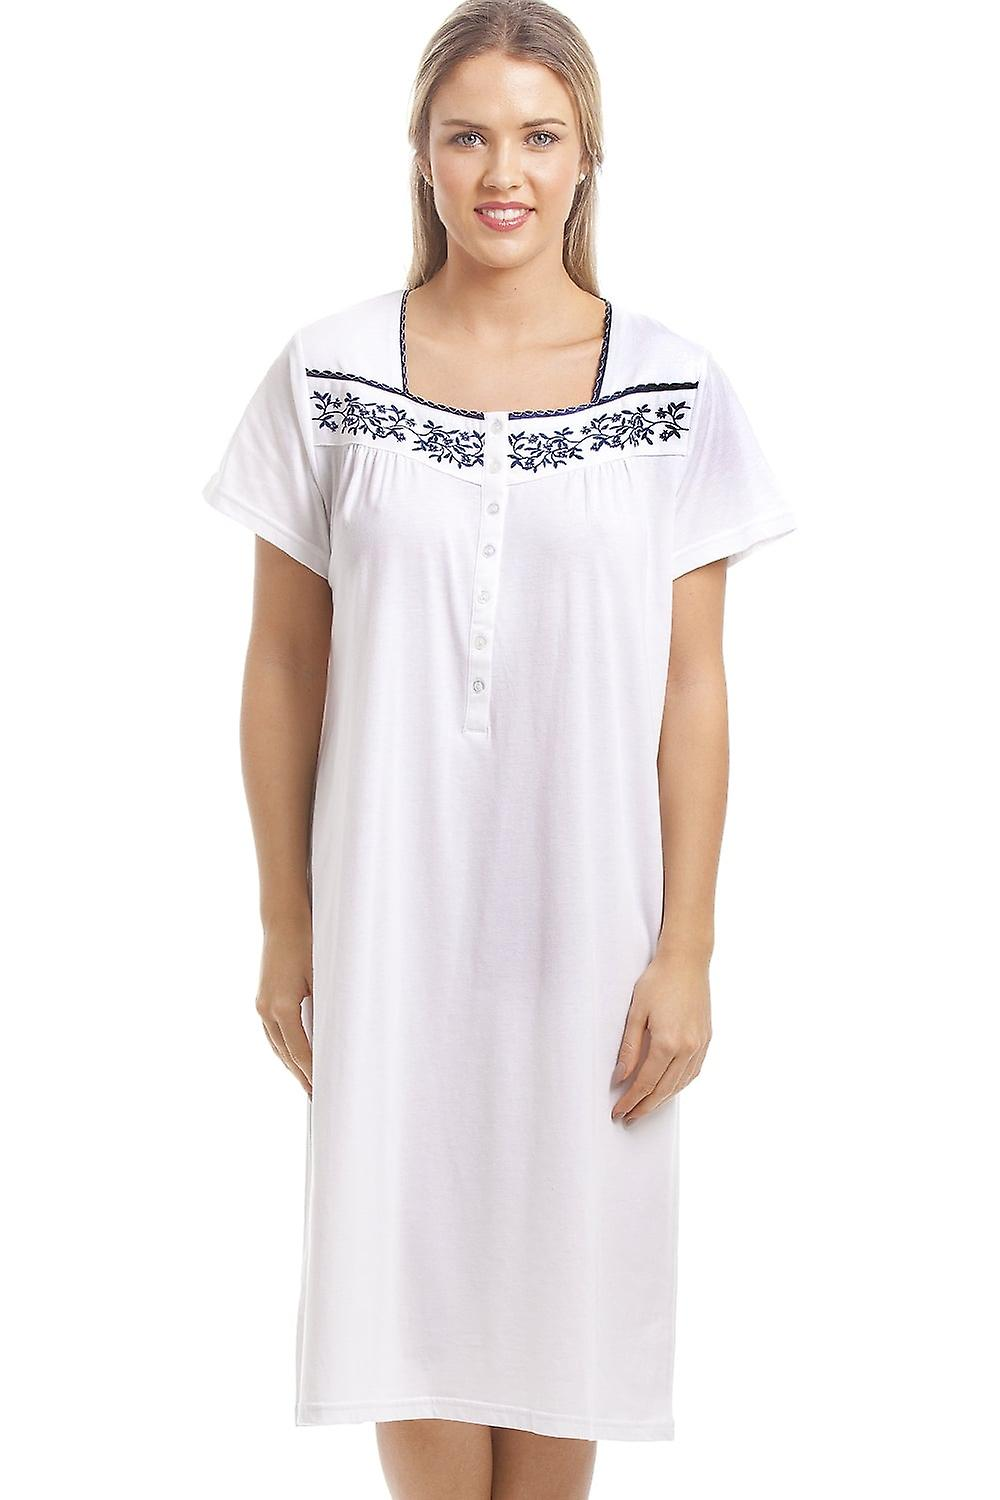 Camille Classic White Nightdress With Navy Floral Design